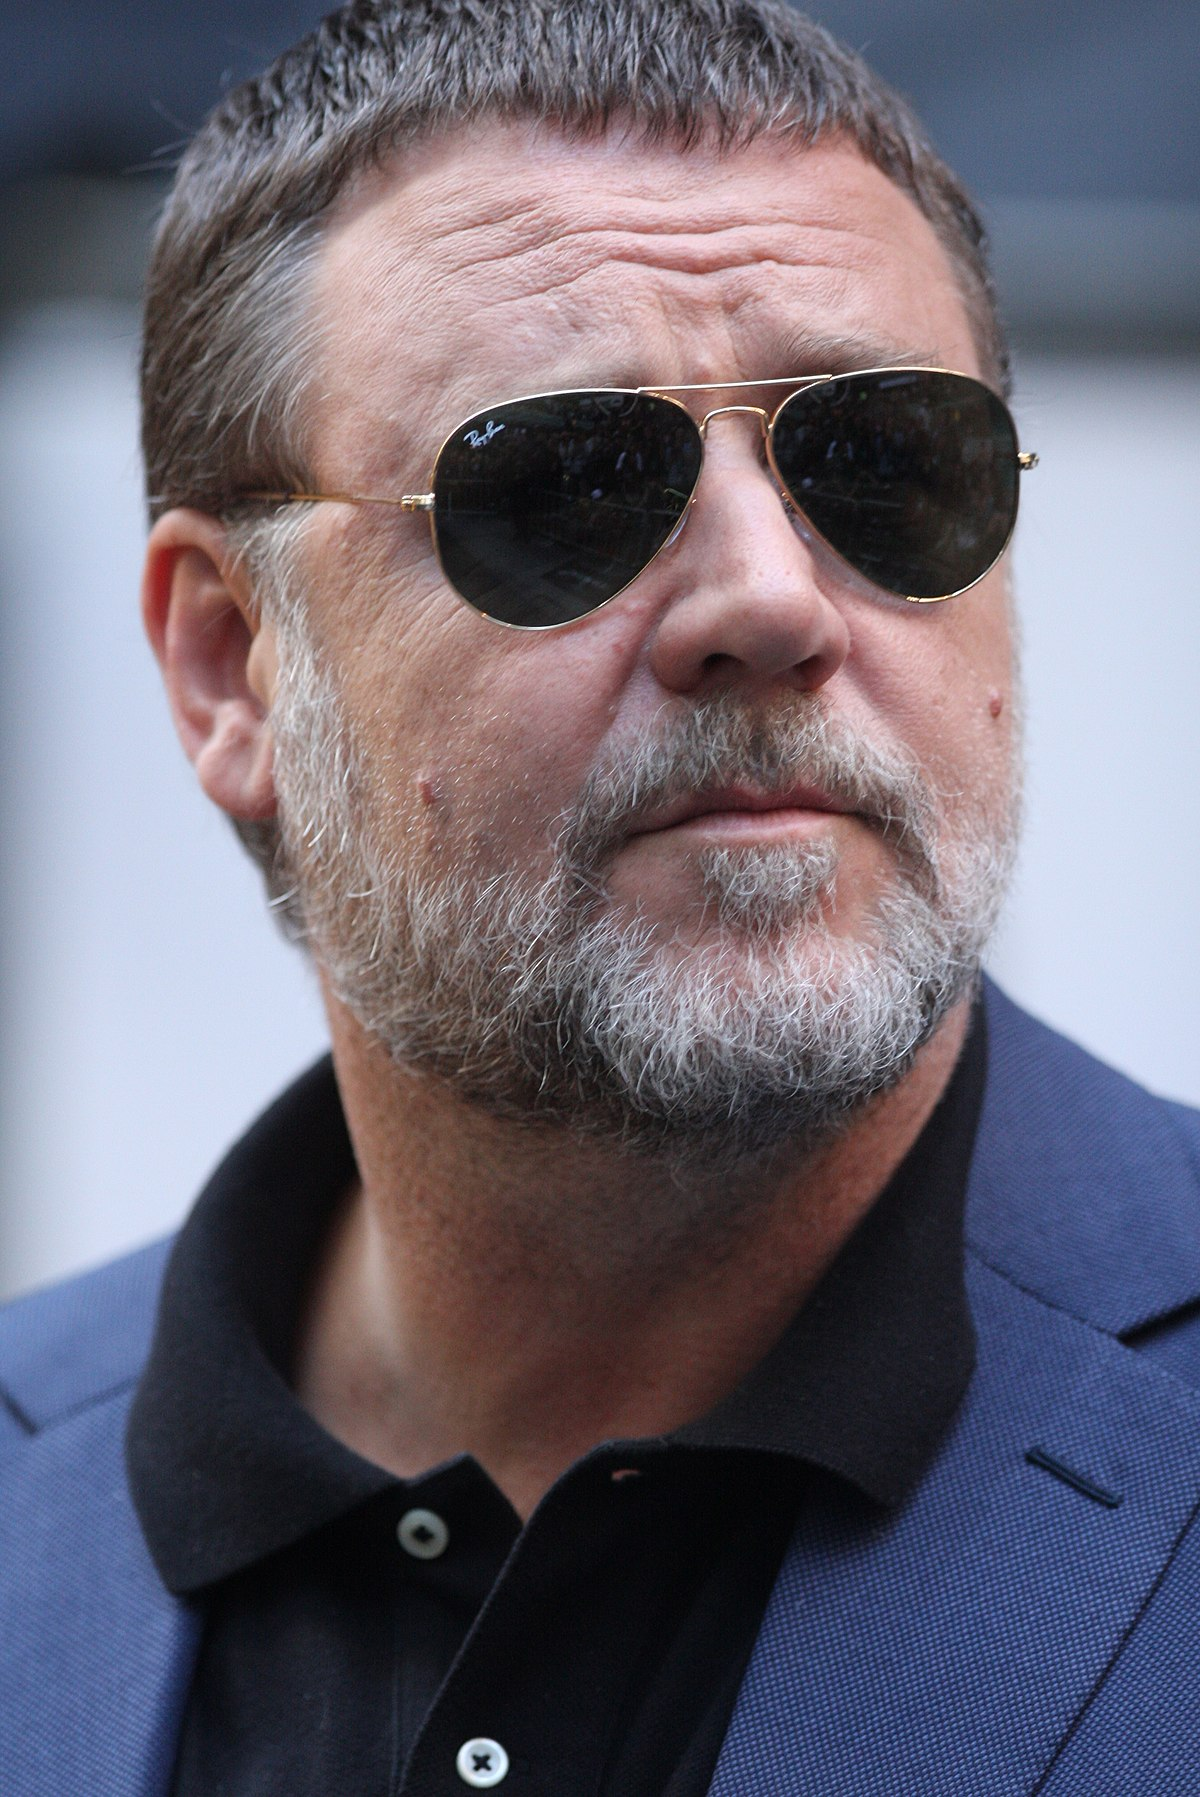 Russell Crowe - Wikipedia